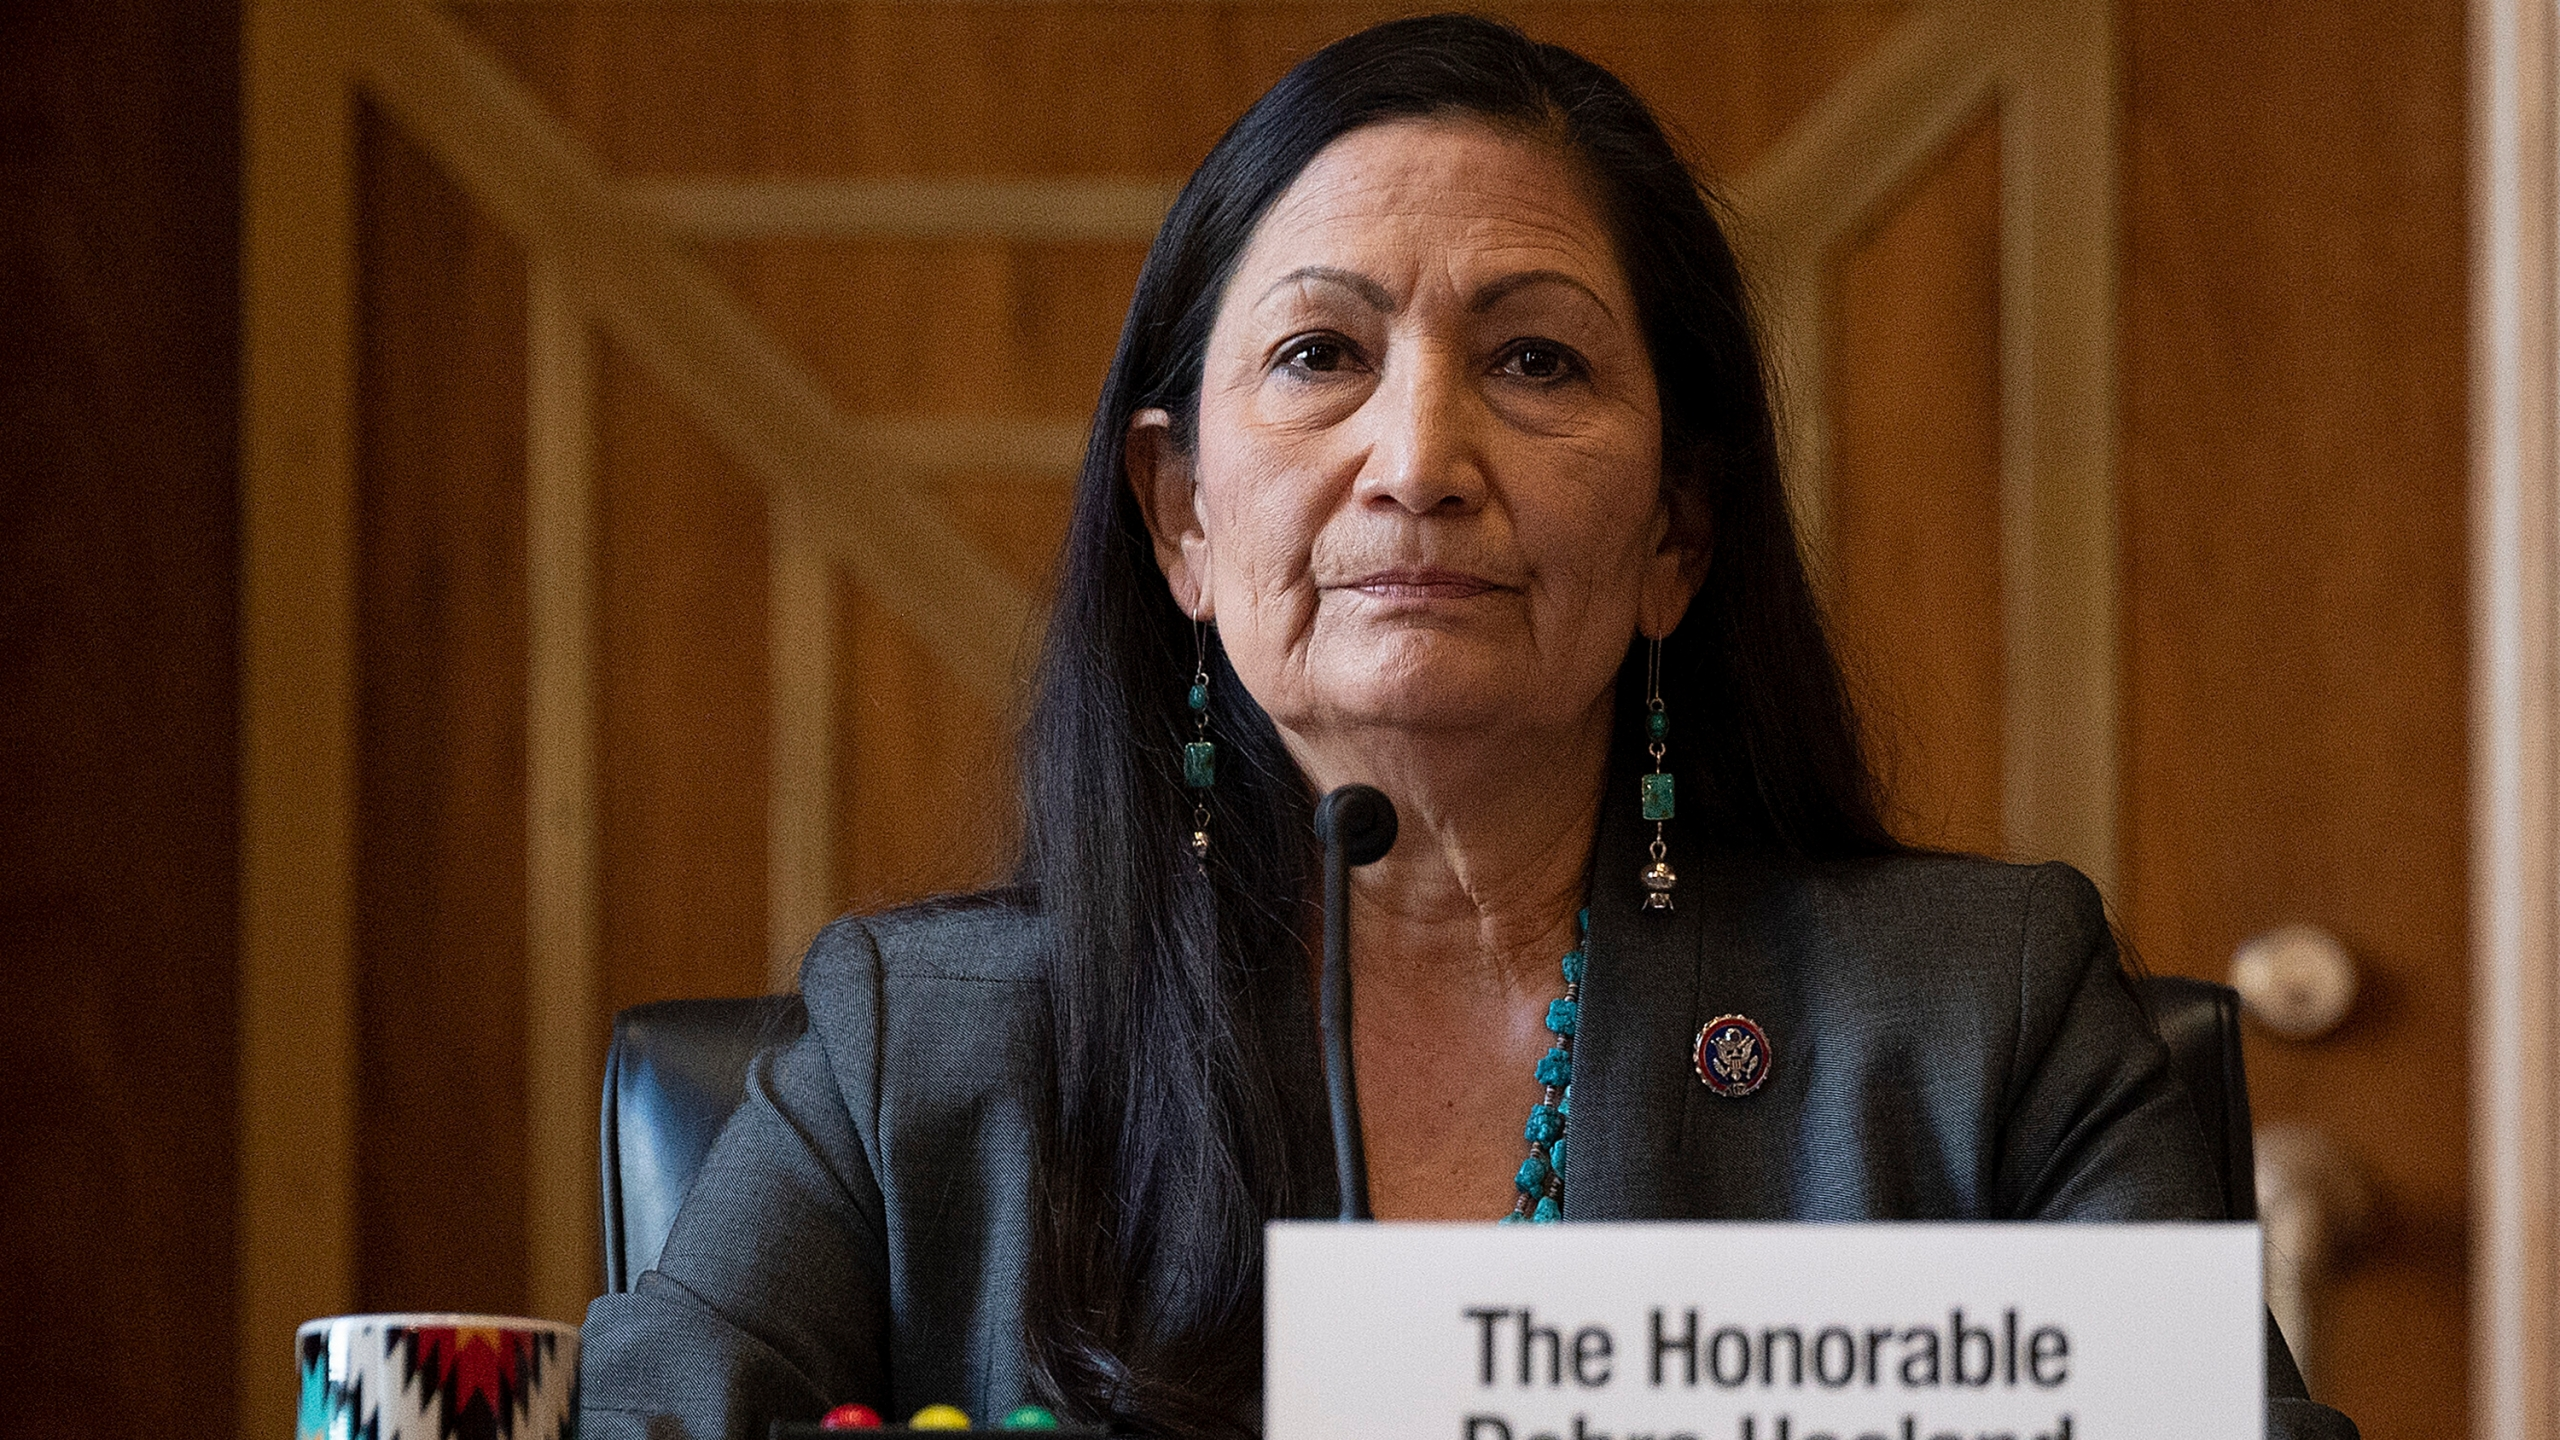 "In this Tuesday, Feb. 23, 2021, file photo, Rep. Deb Haaland, D-N.M., listens during the Senate Committee on Energy and Natural Resources hearing on her nomination to be Interior secretary, on Capitol Hill in Washington. Some Republican senators labeled Haaland ""radical"" over her calls to reduce dependence on fossil fuels and address climate change, and said that could hurt rural America and major oil and gas-producing states. The label of Haaland as a ""radical"" by Republican lawmakers is getting pushback from Native Americans. (Jim Watson/Pool Photo via AP, File)"